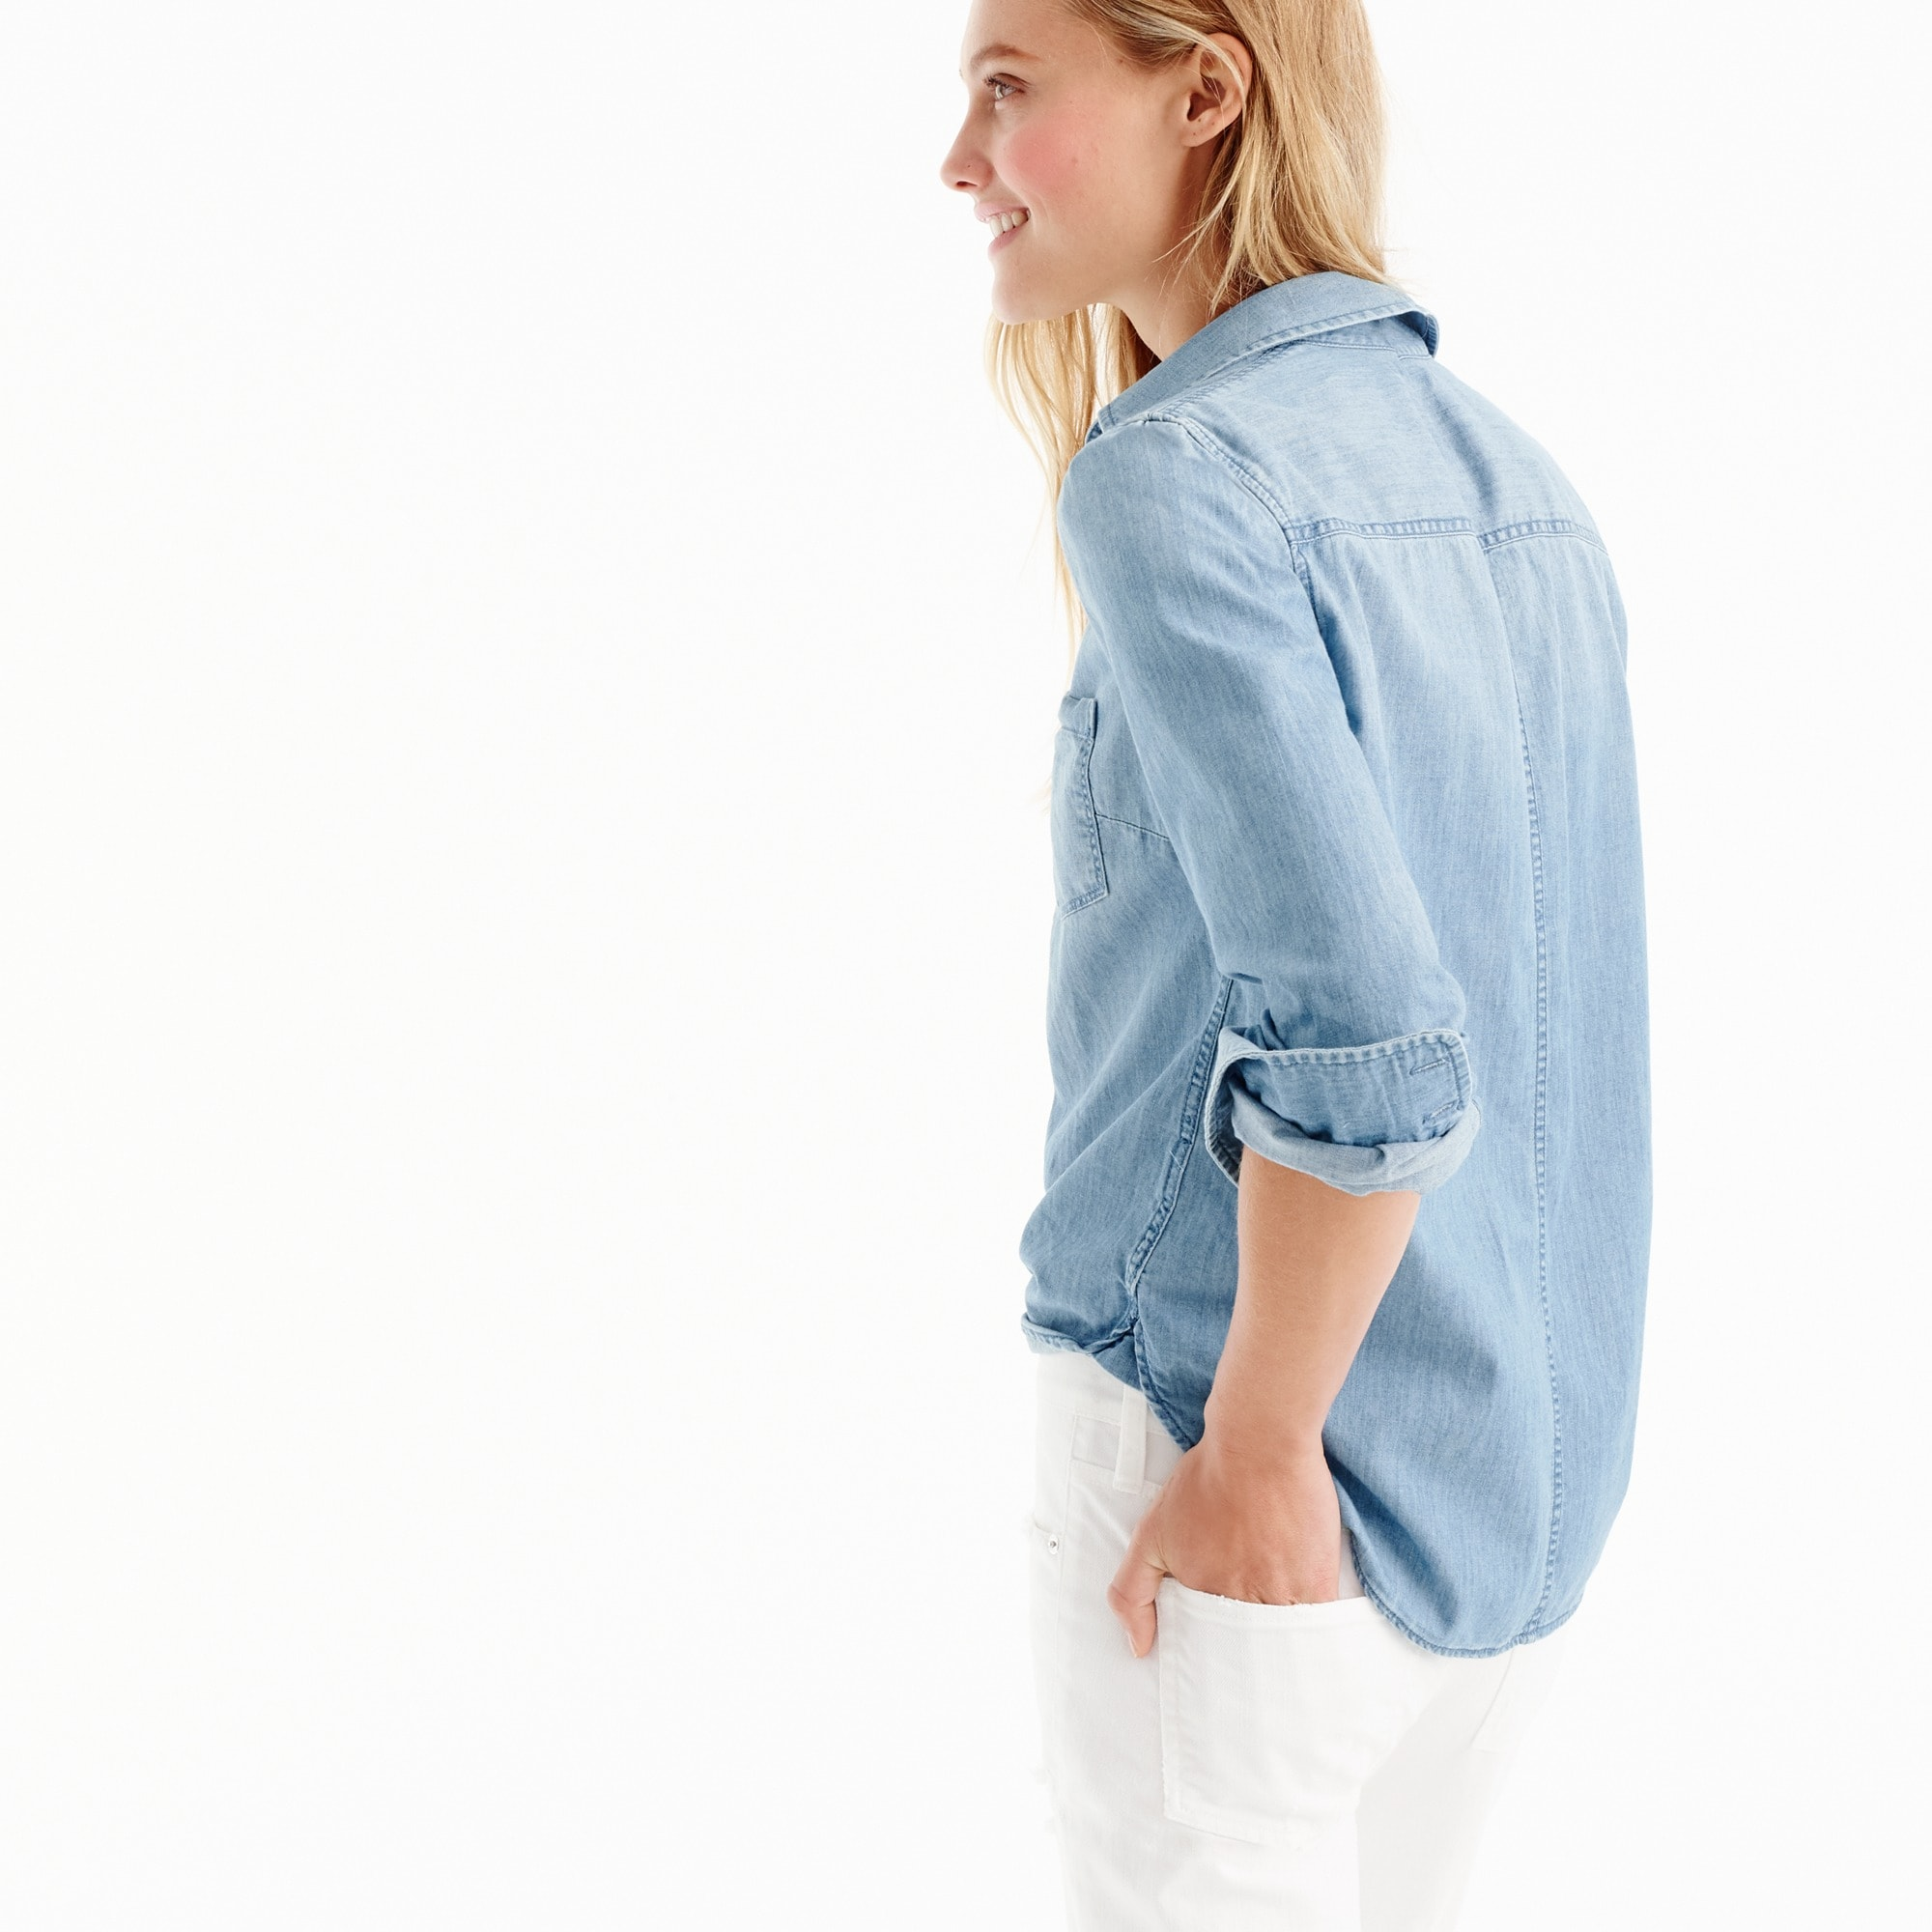 Image 3 for Petite always chambray shirt